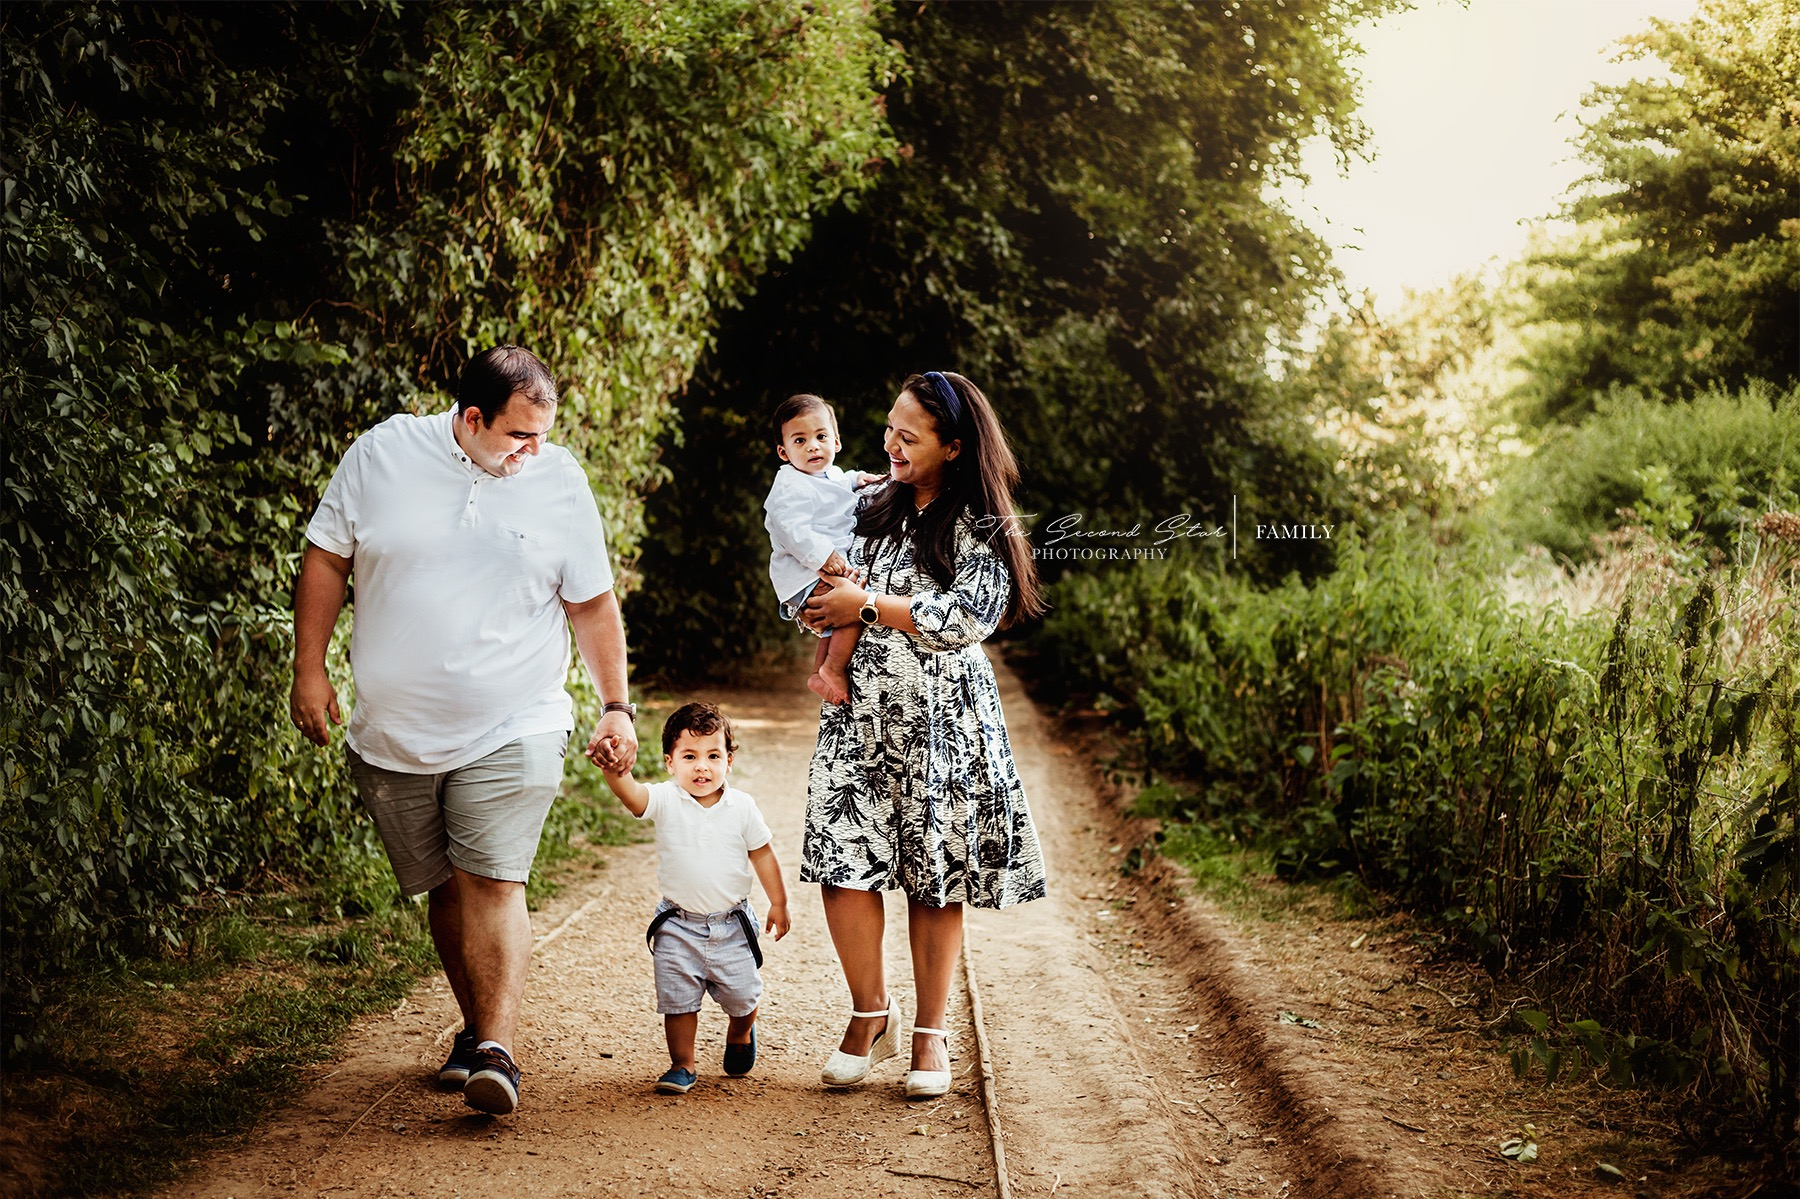 Family photographer Bicester, Oxfordshir